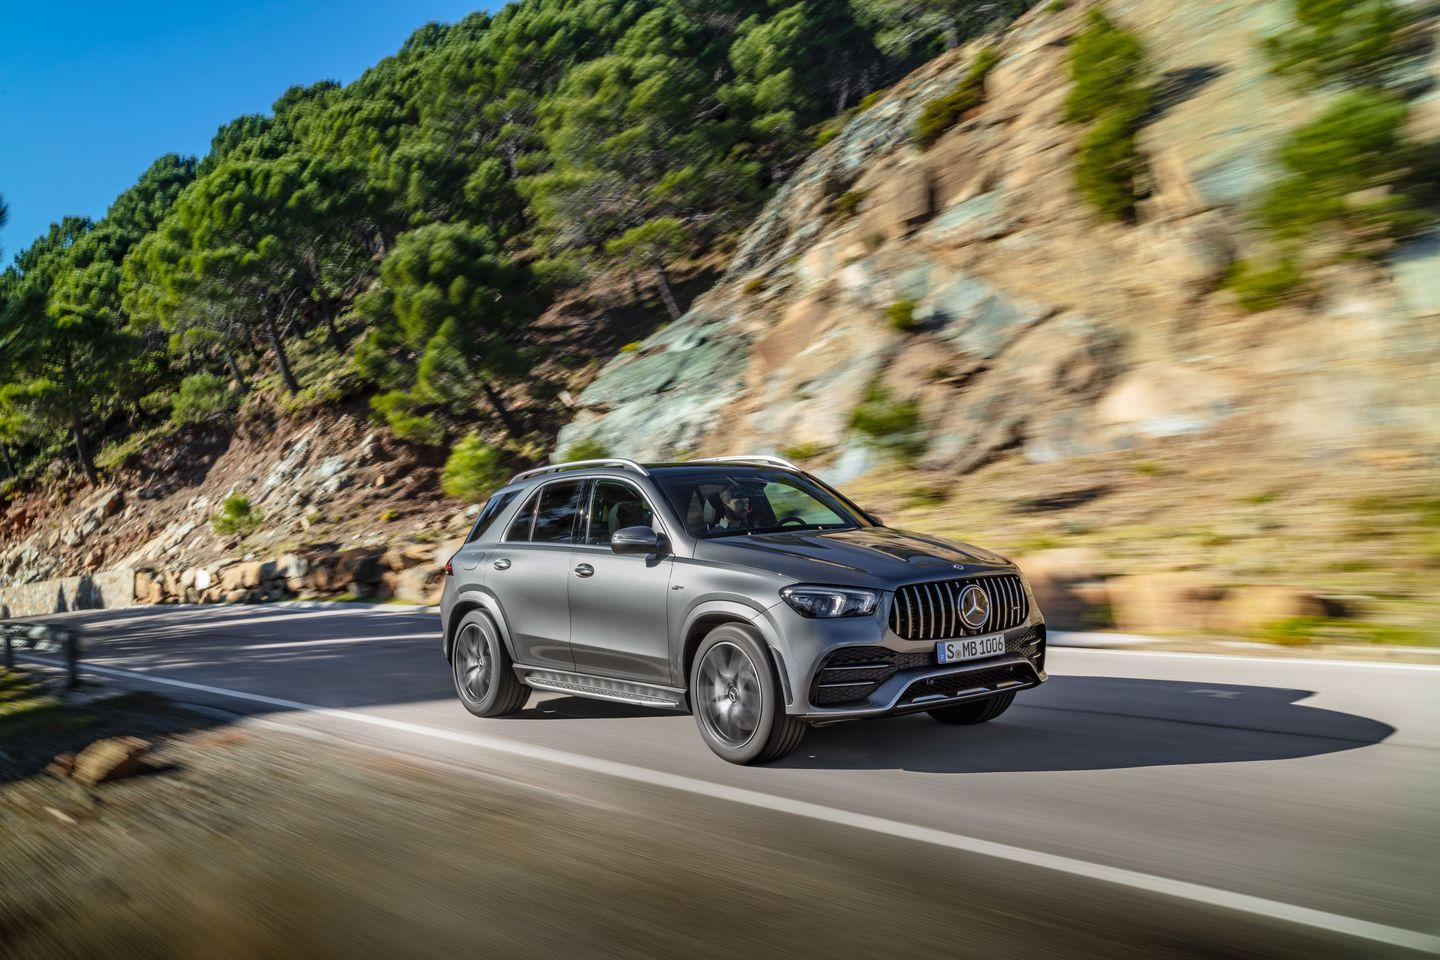 "<p>Like <a href=""https://www.caranddriver.com/mercedes-benz/gle-class"" rel=""nofollow noopener"" target=""_blank"" data-ylk=""slk:the GLE450"" class=""link rapid-noclick-resp"">the GLE450</a>, the GLE53 is a hybrid with a 48-volt electrical system powerful enough to run an electric supercharger, all vehicle accessories (there is no engine belt drive), and instantly change the height, spring, and damping settings on each wheel through an insanely complicated setup known as E-Active Body Control. </p>"